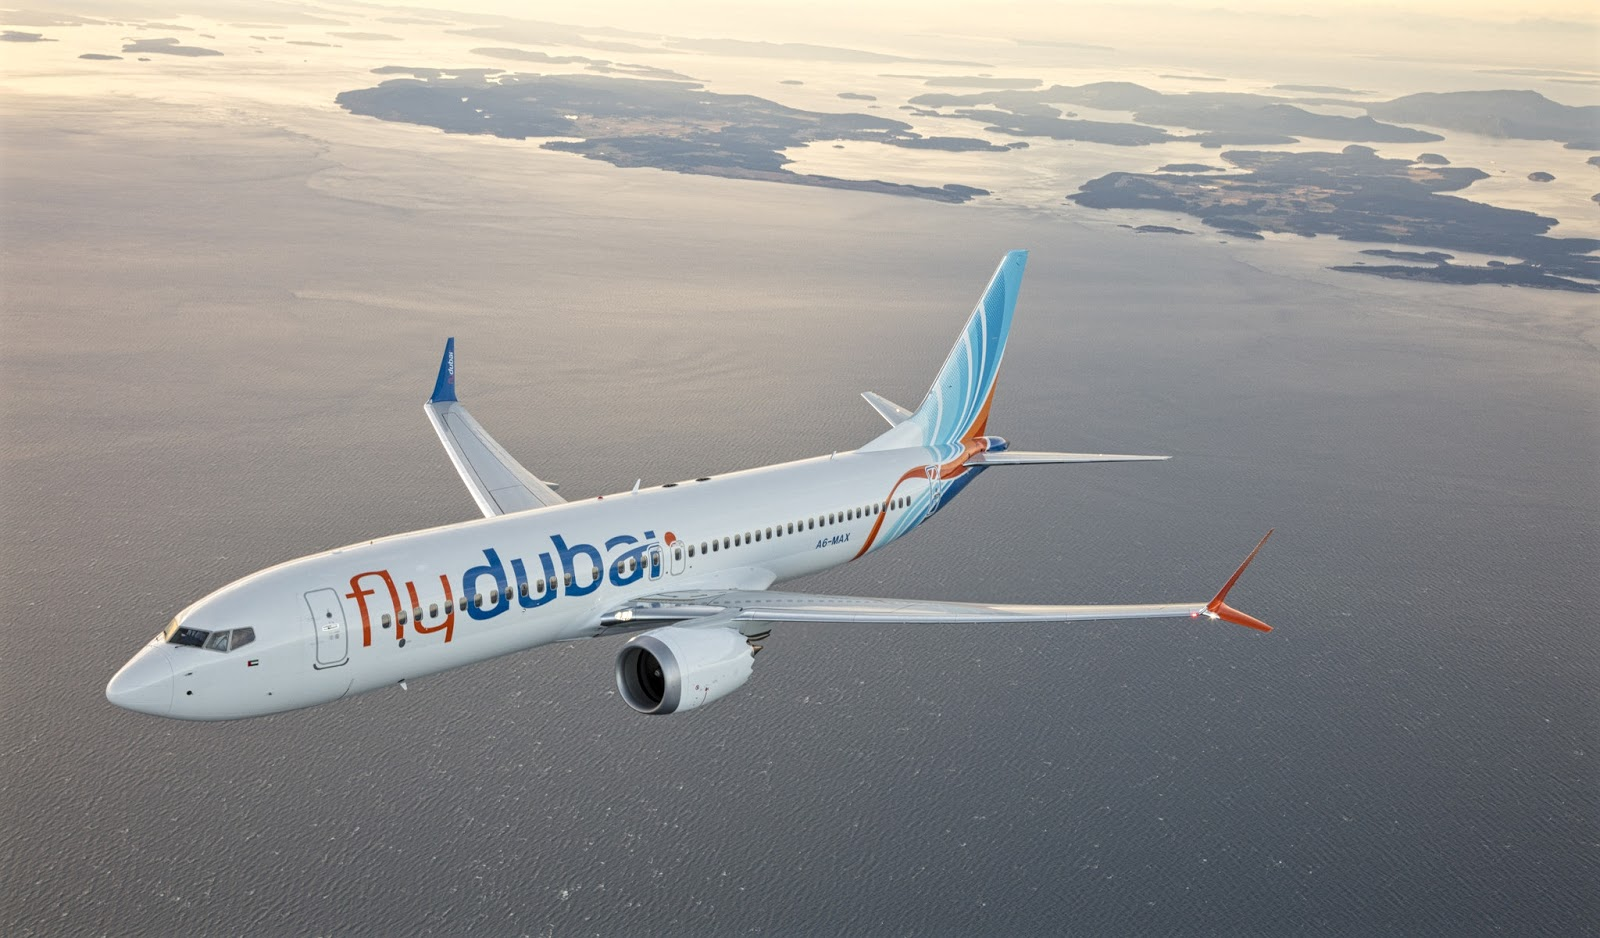 Boeing 737 MAX 8 of FlyDubai While Inflight